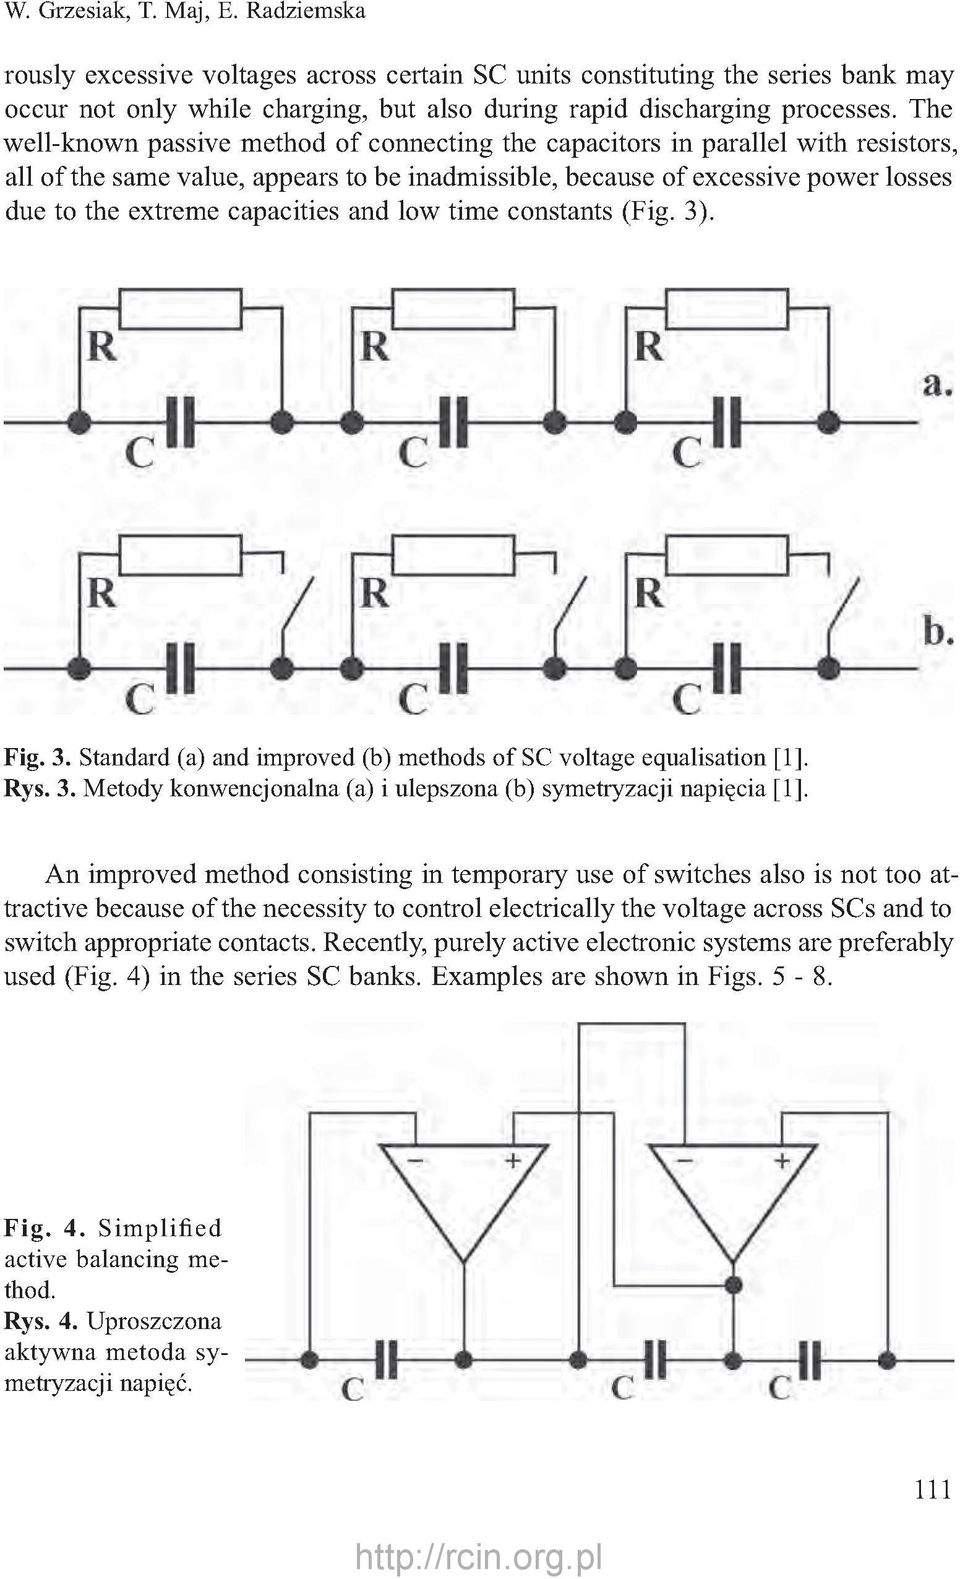 capacities and low time constants (Fig. 3). Fig. 3. Standard (a) and improved (b) methods of SC voltage equalisation [1]. Rys. 3. Metody konwencjonalna (a) i ulepszona (b) symetryzacji napięcia [1].